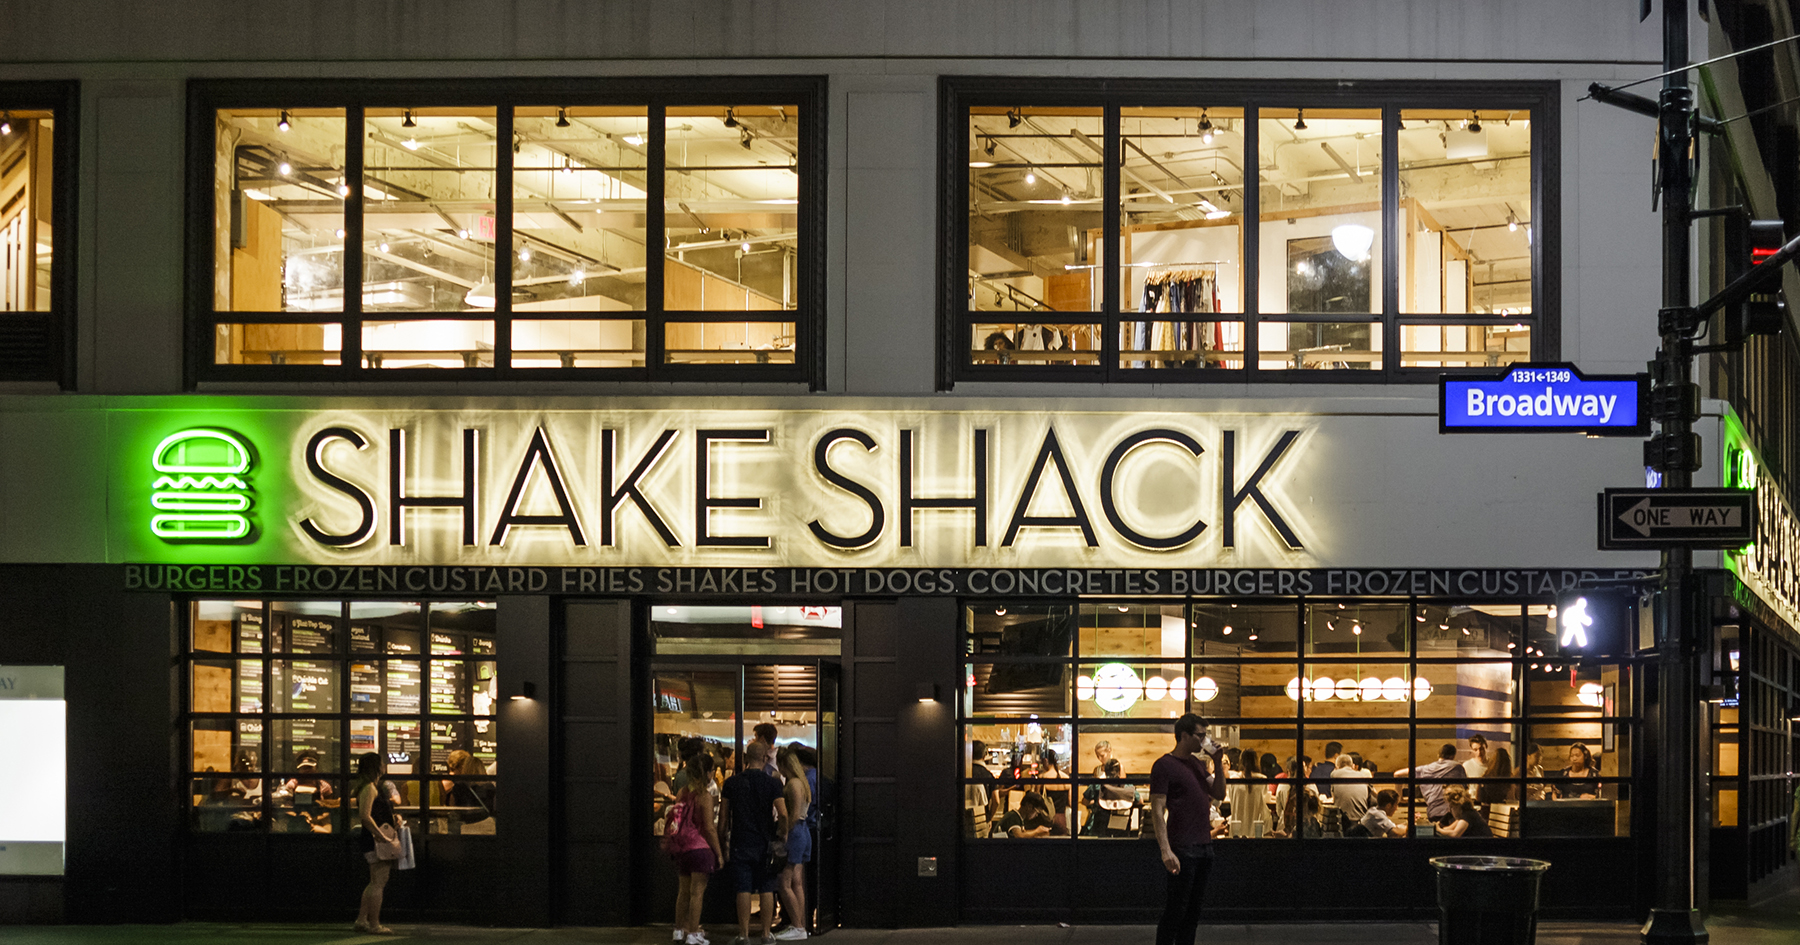 Shake Shack reports dire impacts of COVID-19 on its business